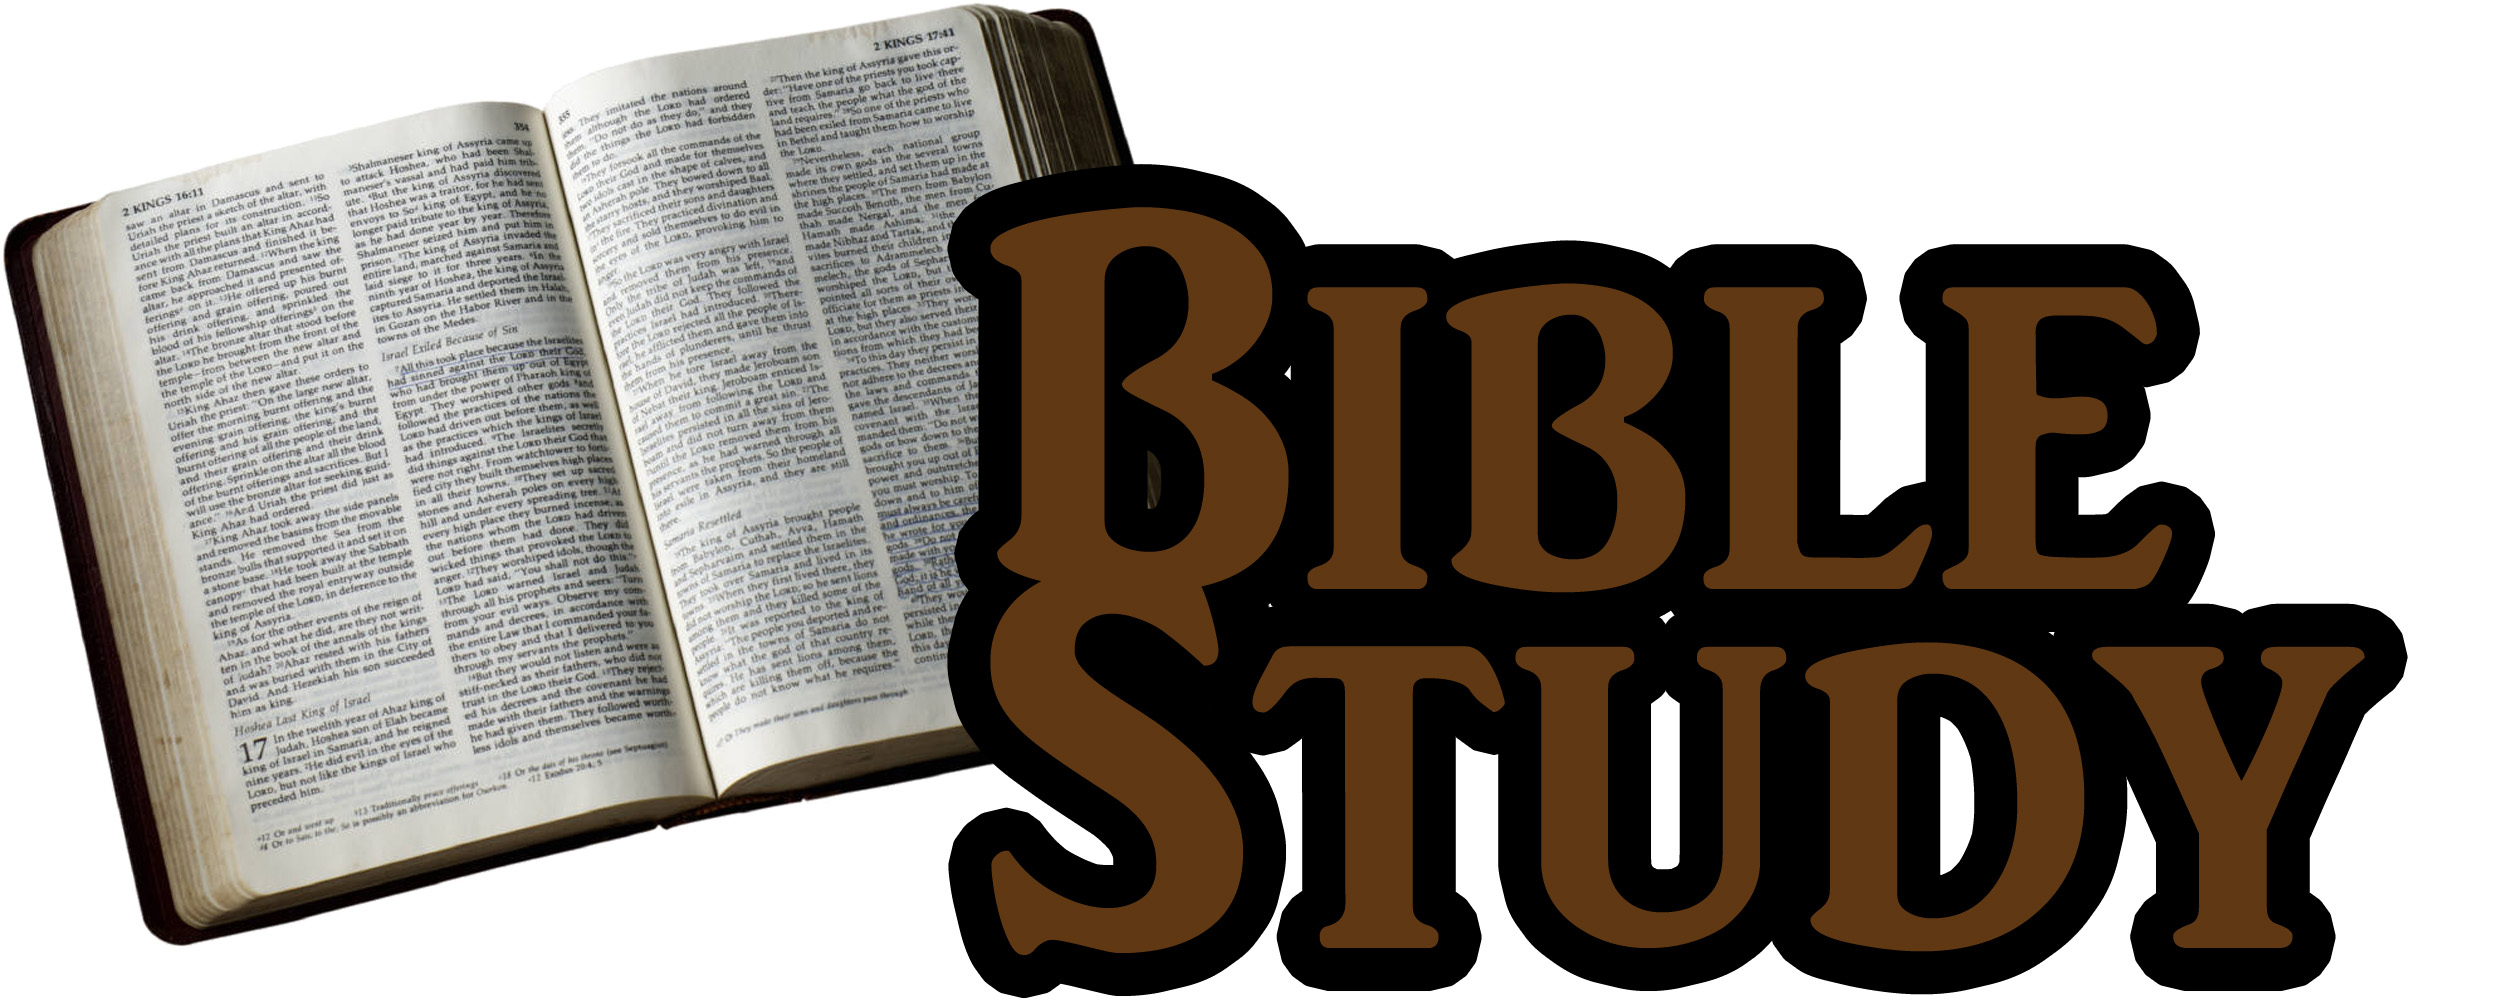 Adult Bible Fellowship Group Clipart - Clipart Suggest